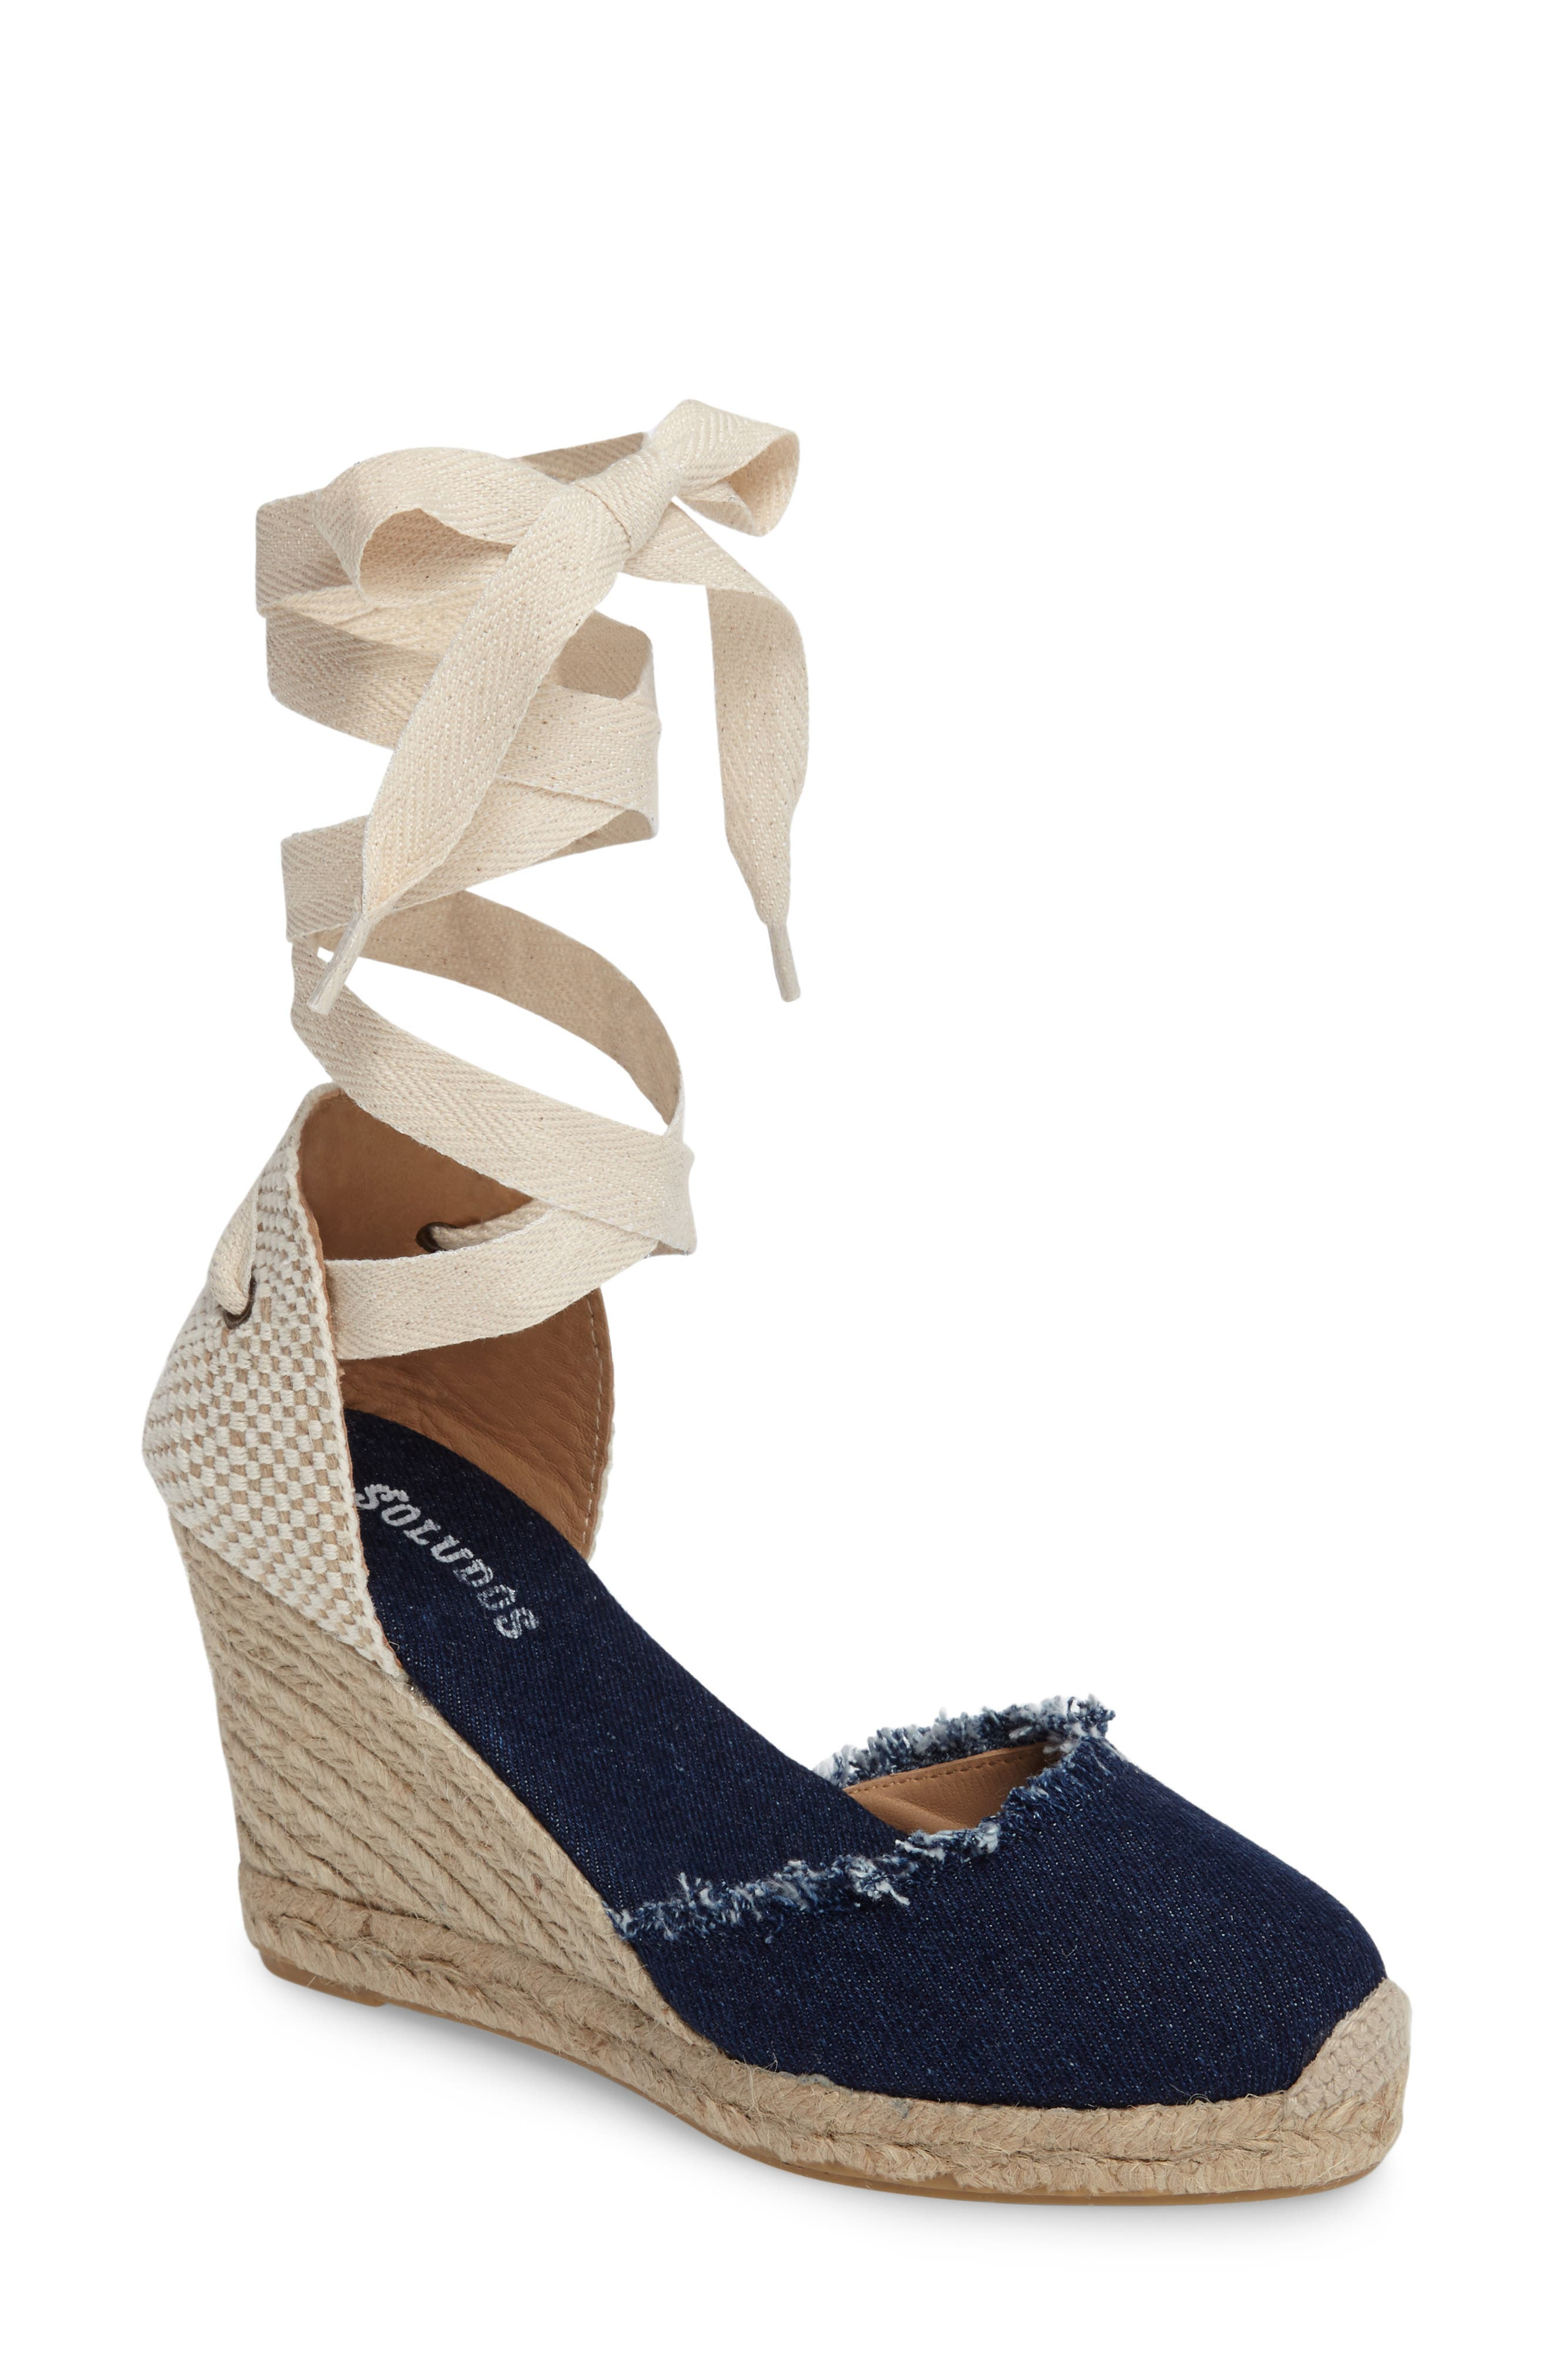 Main Image - Soludos Wedge Lace-Up Espadrille Sandal (Women)